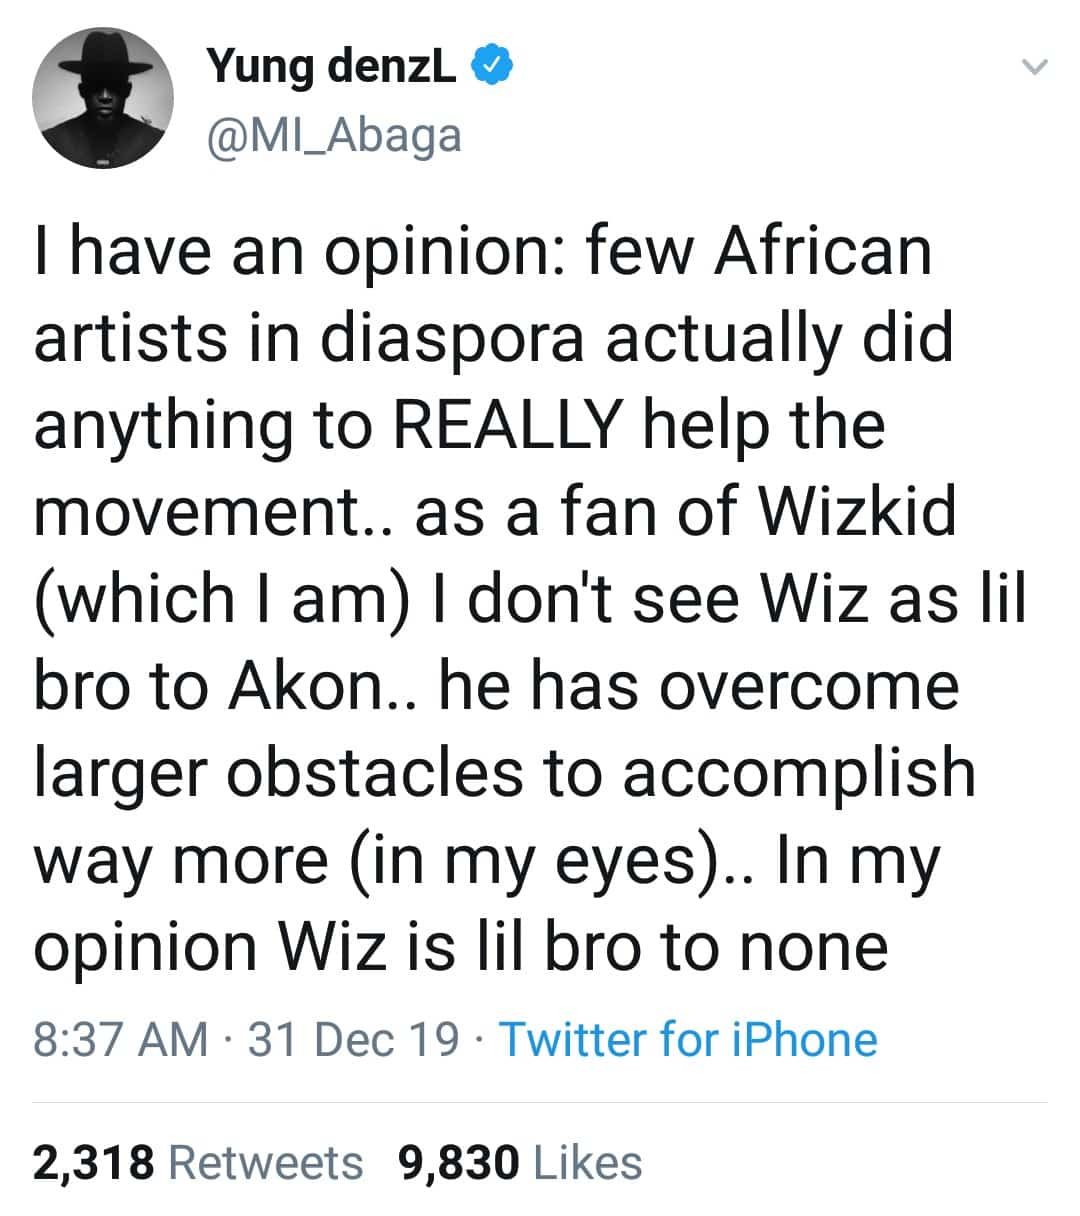 """""""Wizkid Is Lil Bro To None"""" - MI Abaga Shuns Akon For Calling Wizzy His Little Brother 9"""